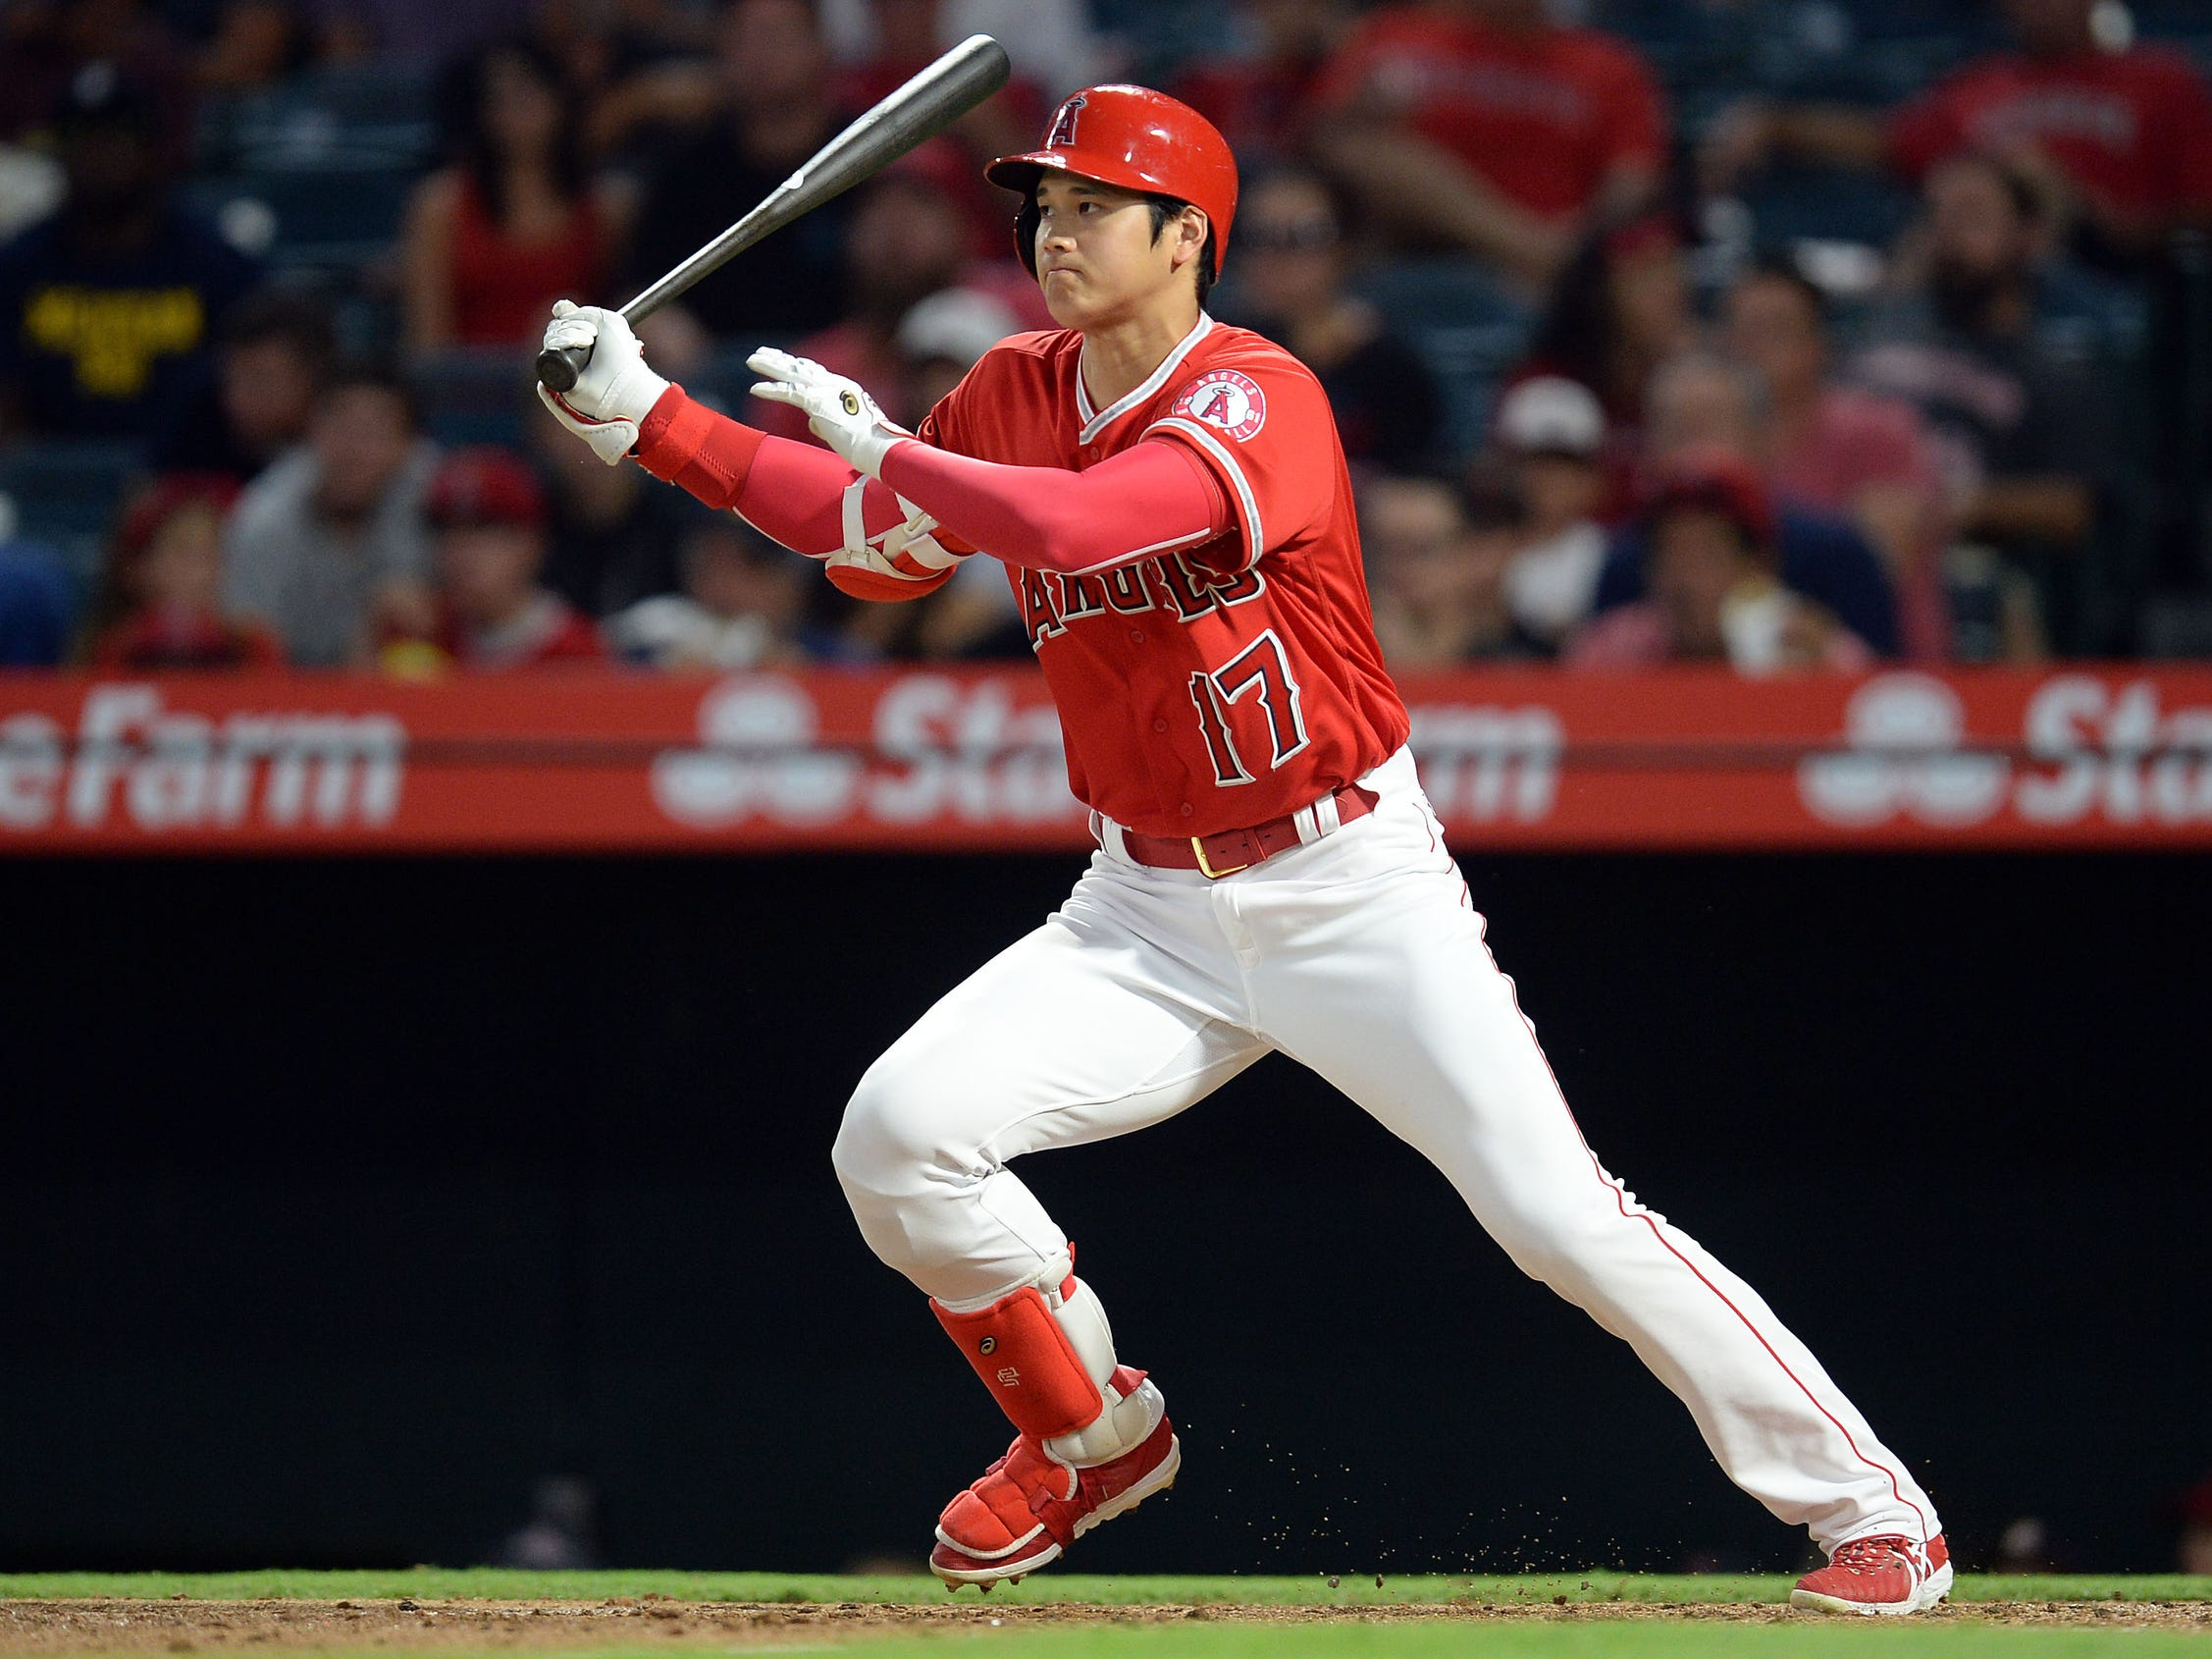 Angels designated hitter Shohei Ohtani hits a single against the Tigers in the second inning on Tuesday, Aug. 7, 2018, in Anaheim, Calif.